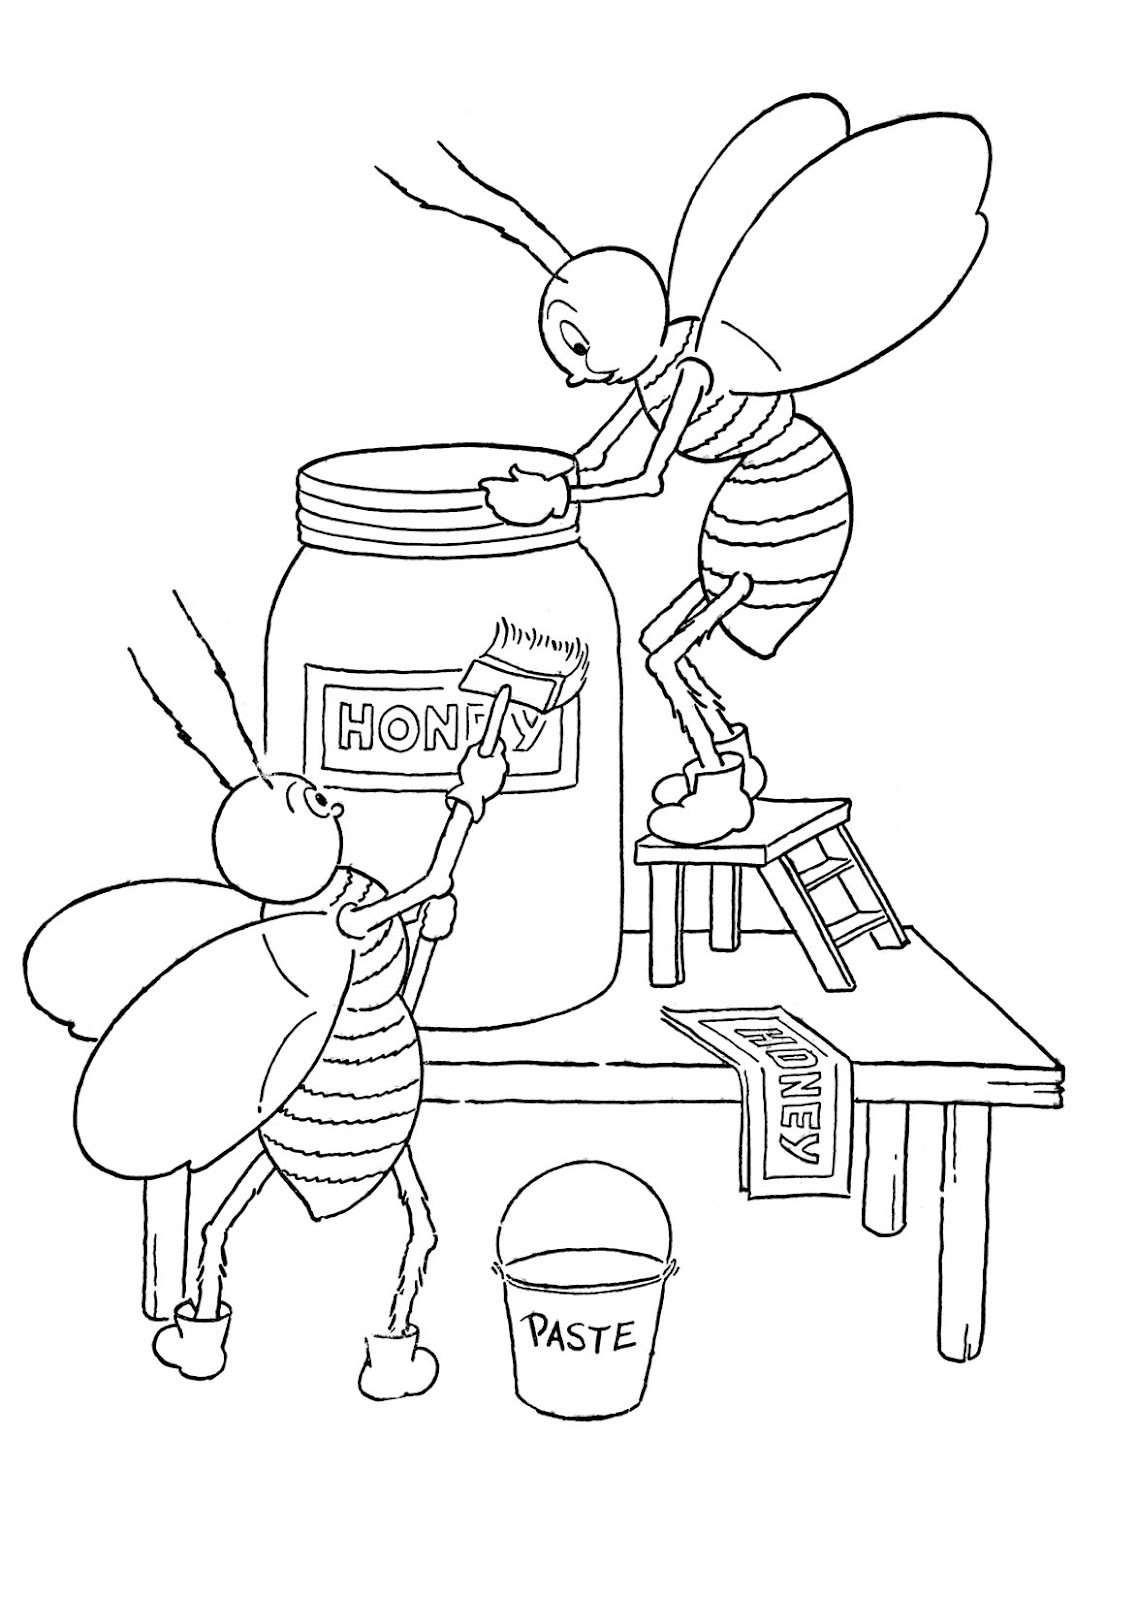 Best ideas about Honey Bee Coloring Pages For Kids . Save or Pin Kids Printable Honey Bees Coloring Page The Graphics Fairy Now.